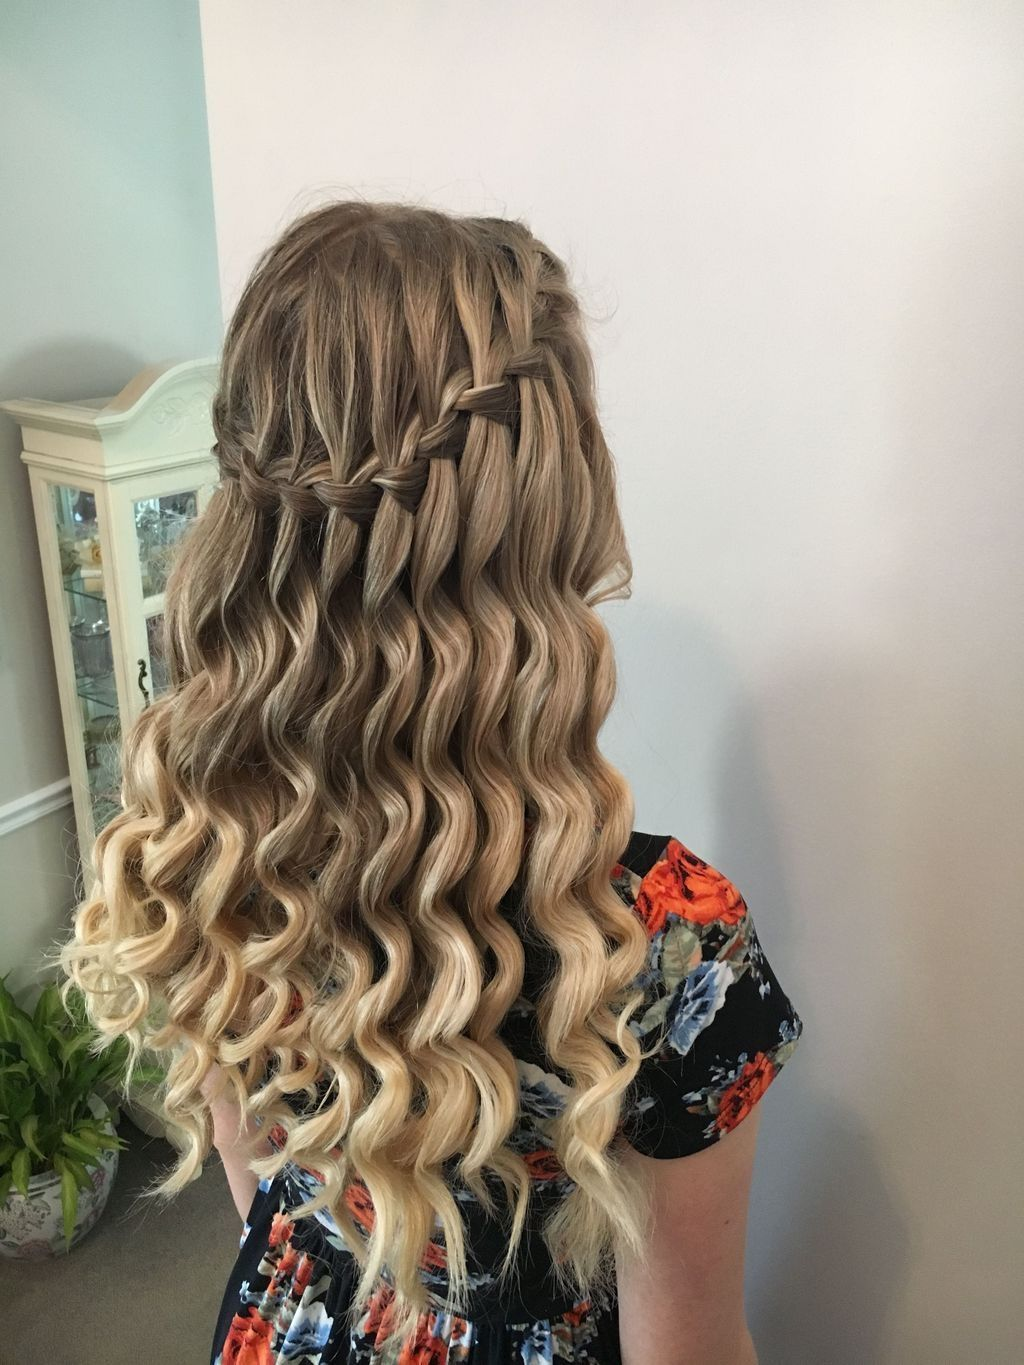 40 Pretty Prom Hairstyle Ideas For Curly Long Hair Cool 40 Pretty Prom Hairstyle Ideas For Curly In 2020 Braids For Long Hair Waterfall Braid Hairstyle Hair Styles